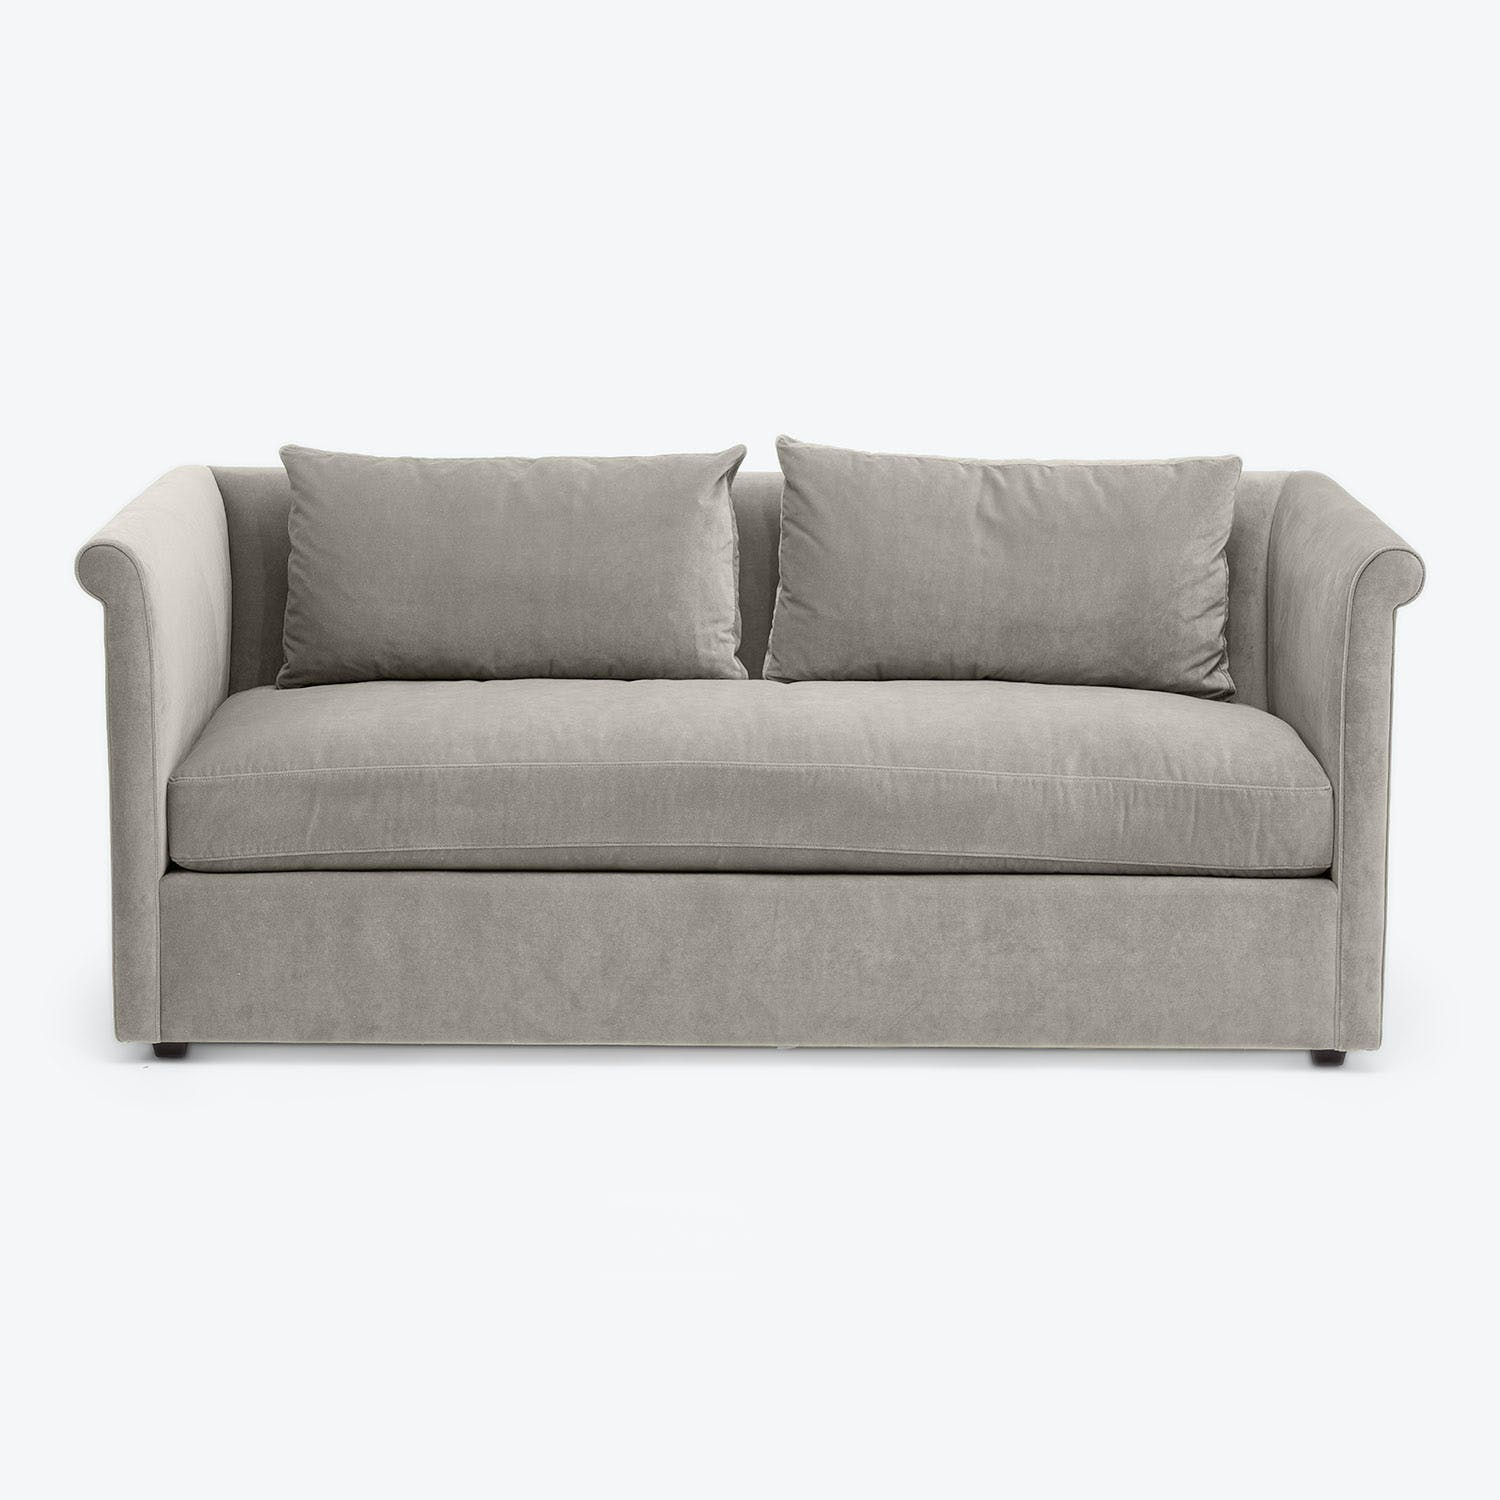 - Queen Sleeper Sofa - Abc Home